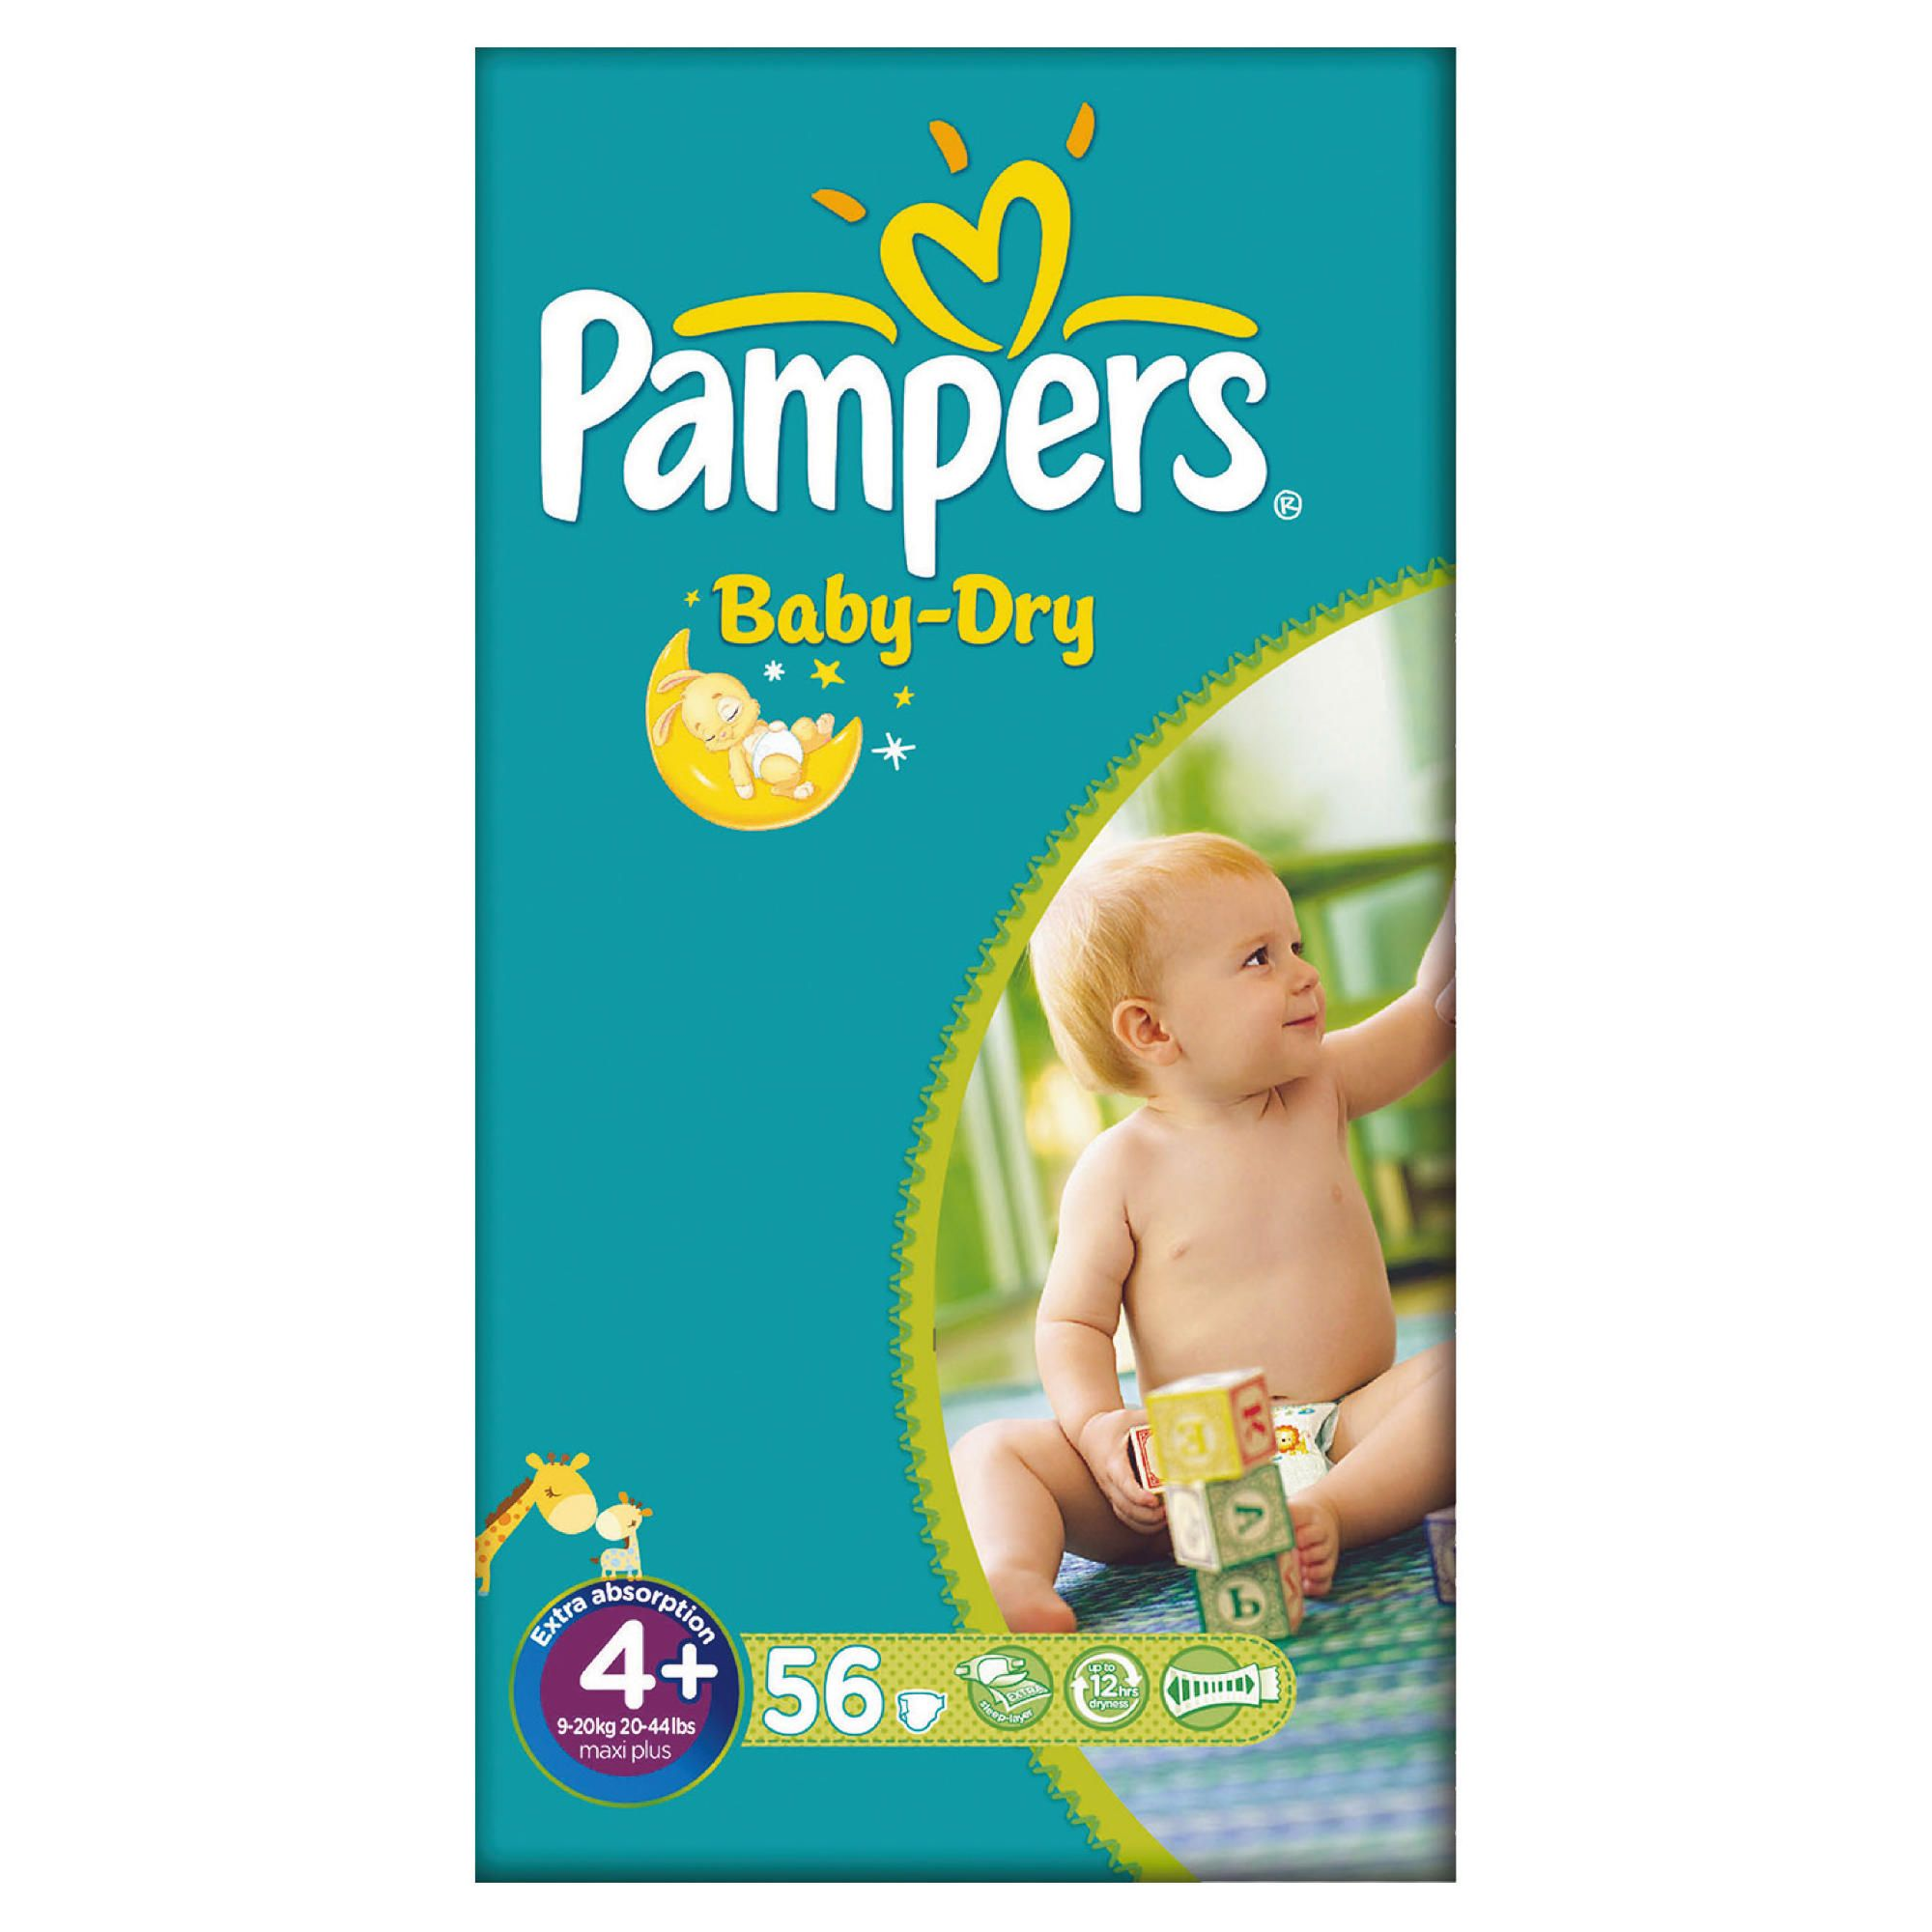 Pampers Baby-Dry locks the wetness away from your baby's skin thanks to its Micro Pearls™ located in the core of the diaper that absorbs up to 30 times their weight. This way your baby can enjoy comfortable dryness even after the little accidents, for up to 12 hours.